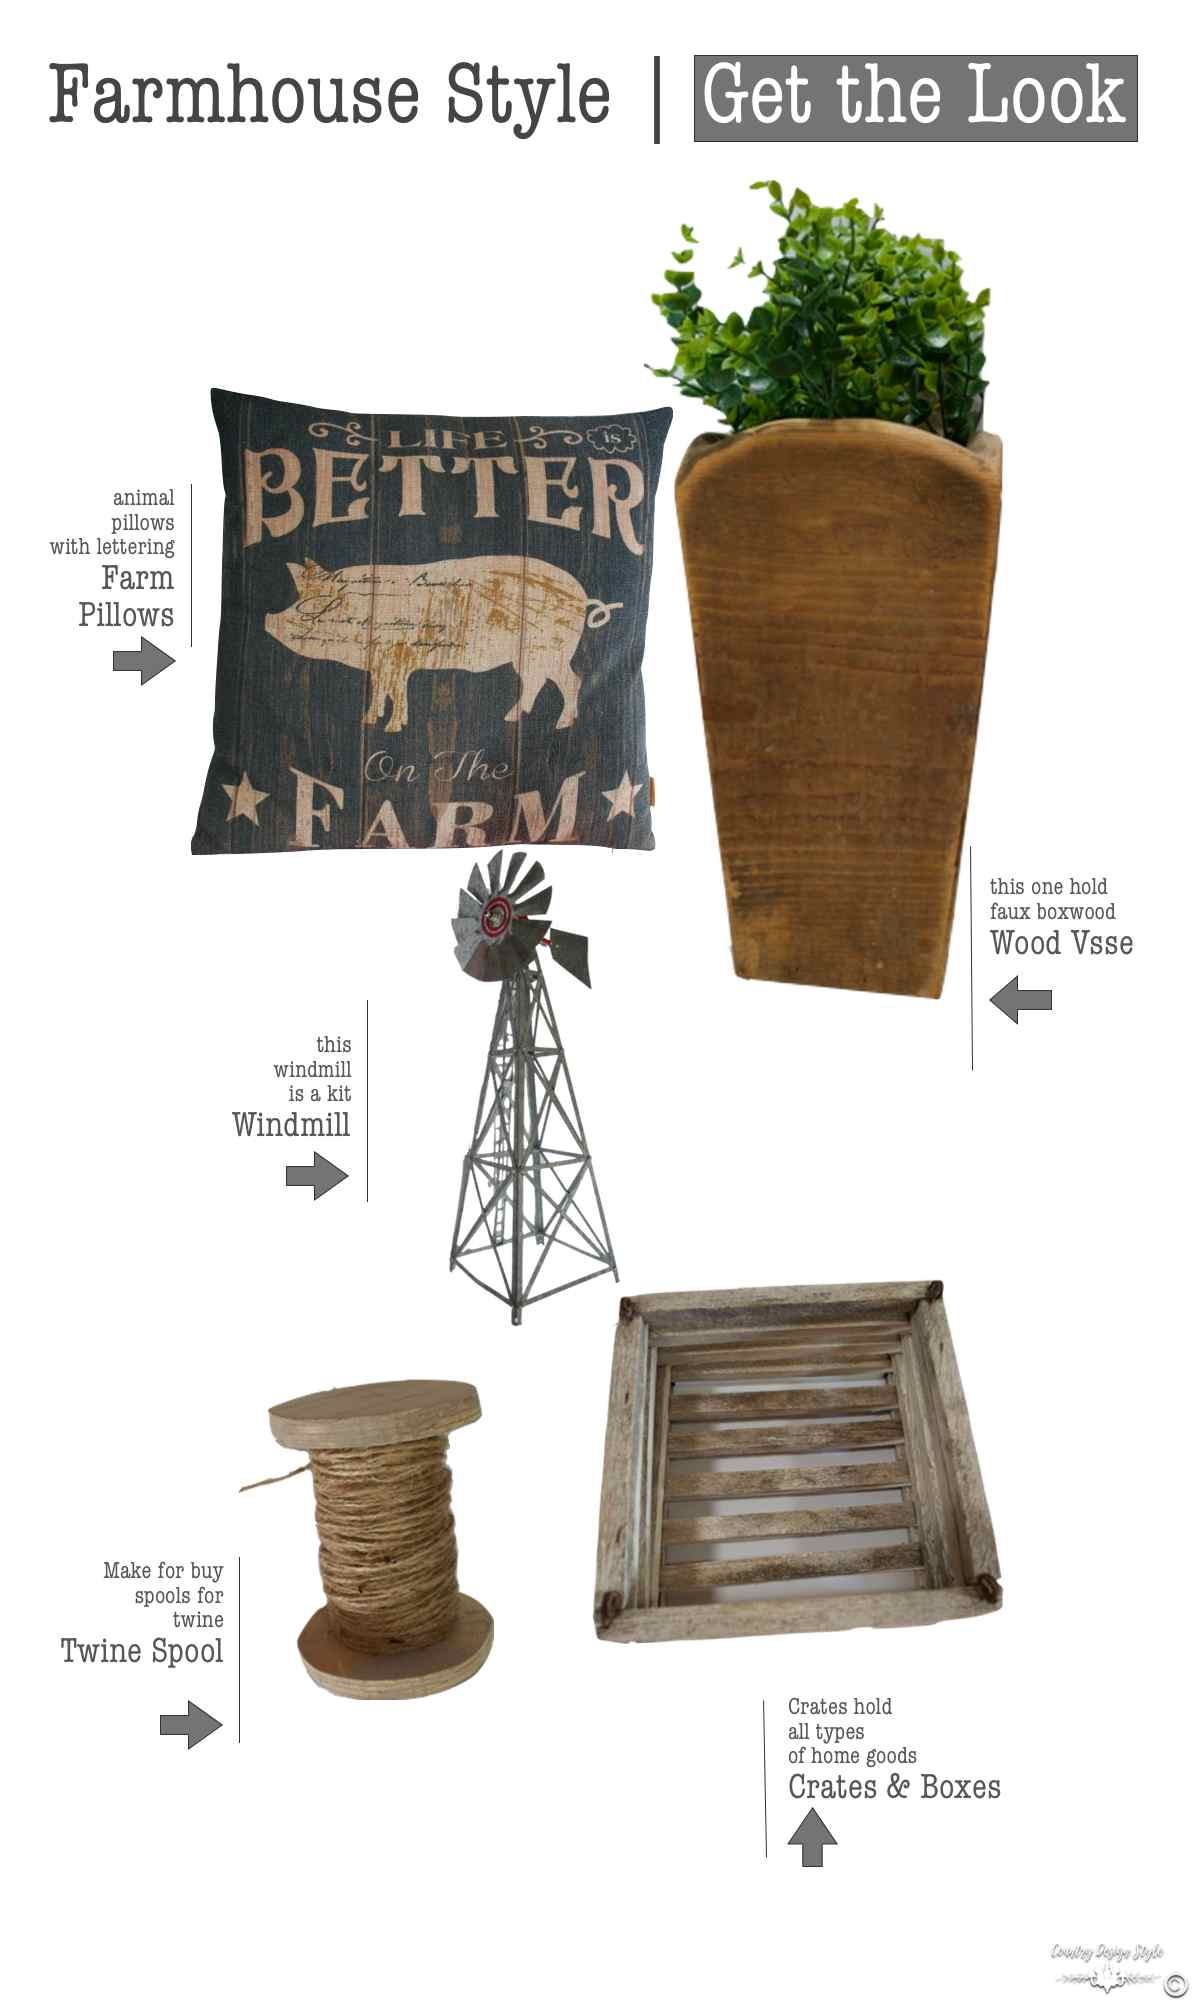 Farmhouse Style Get the Look | Country Design Style | countrydesignstyle.com